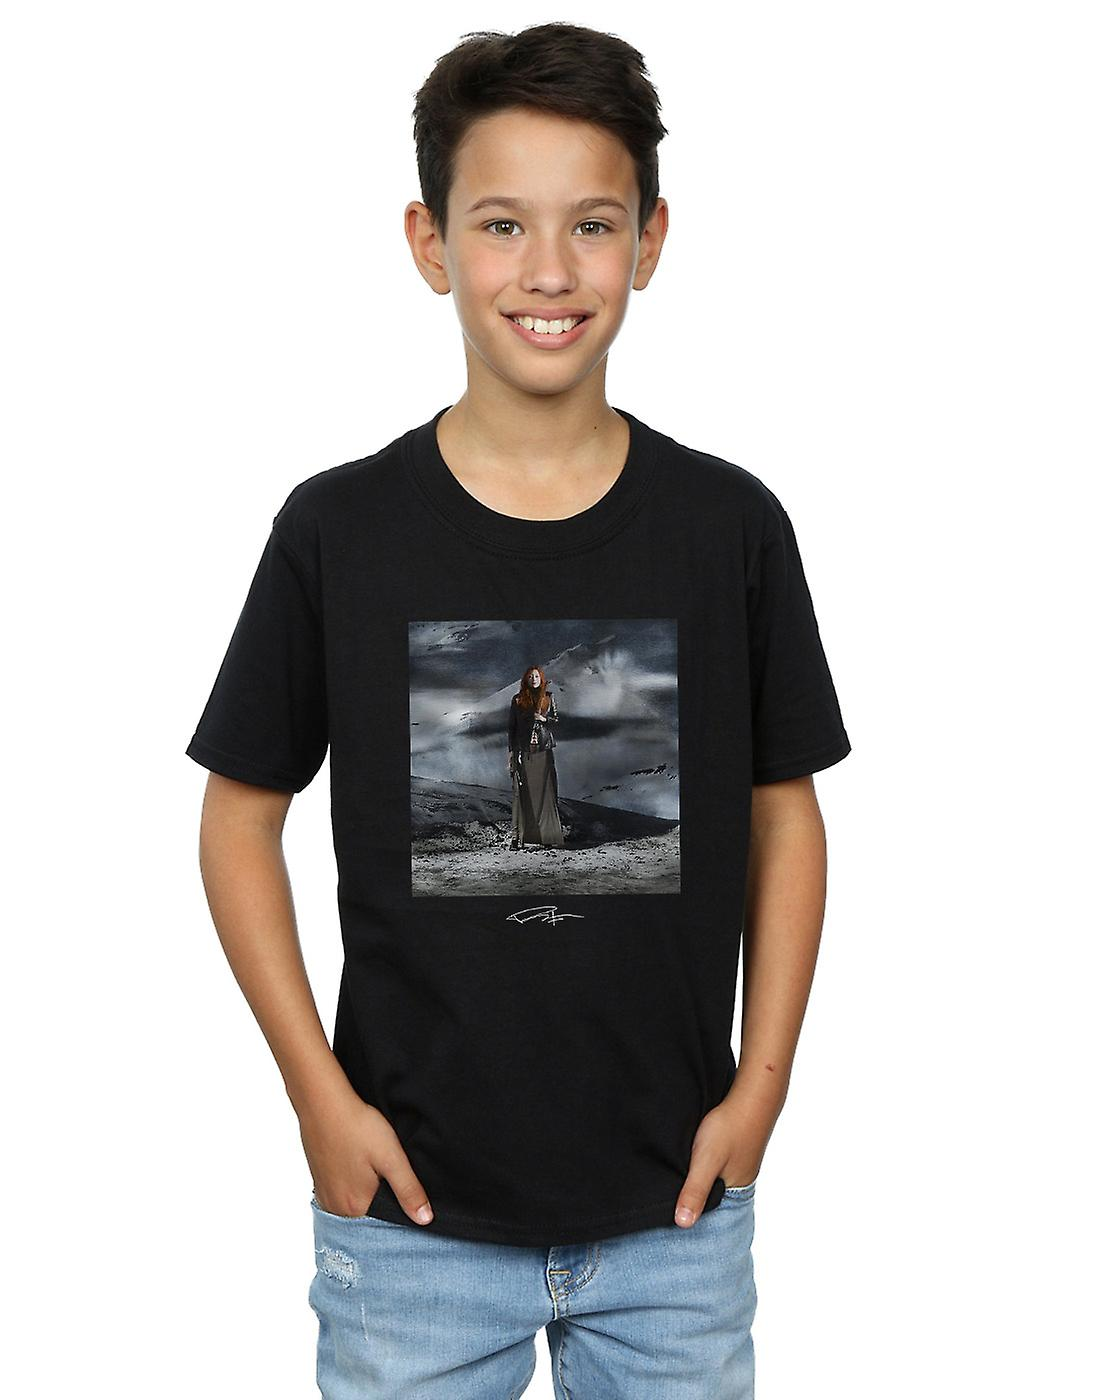 Tori Amos Boys Native Invader Signature T-Shirt